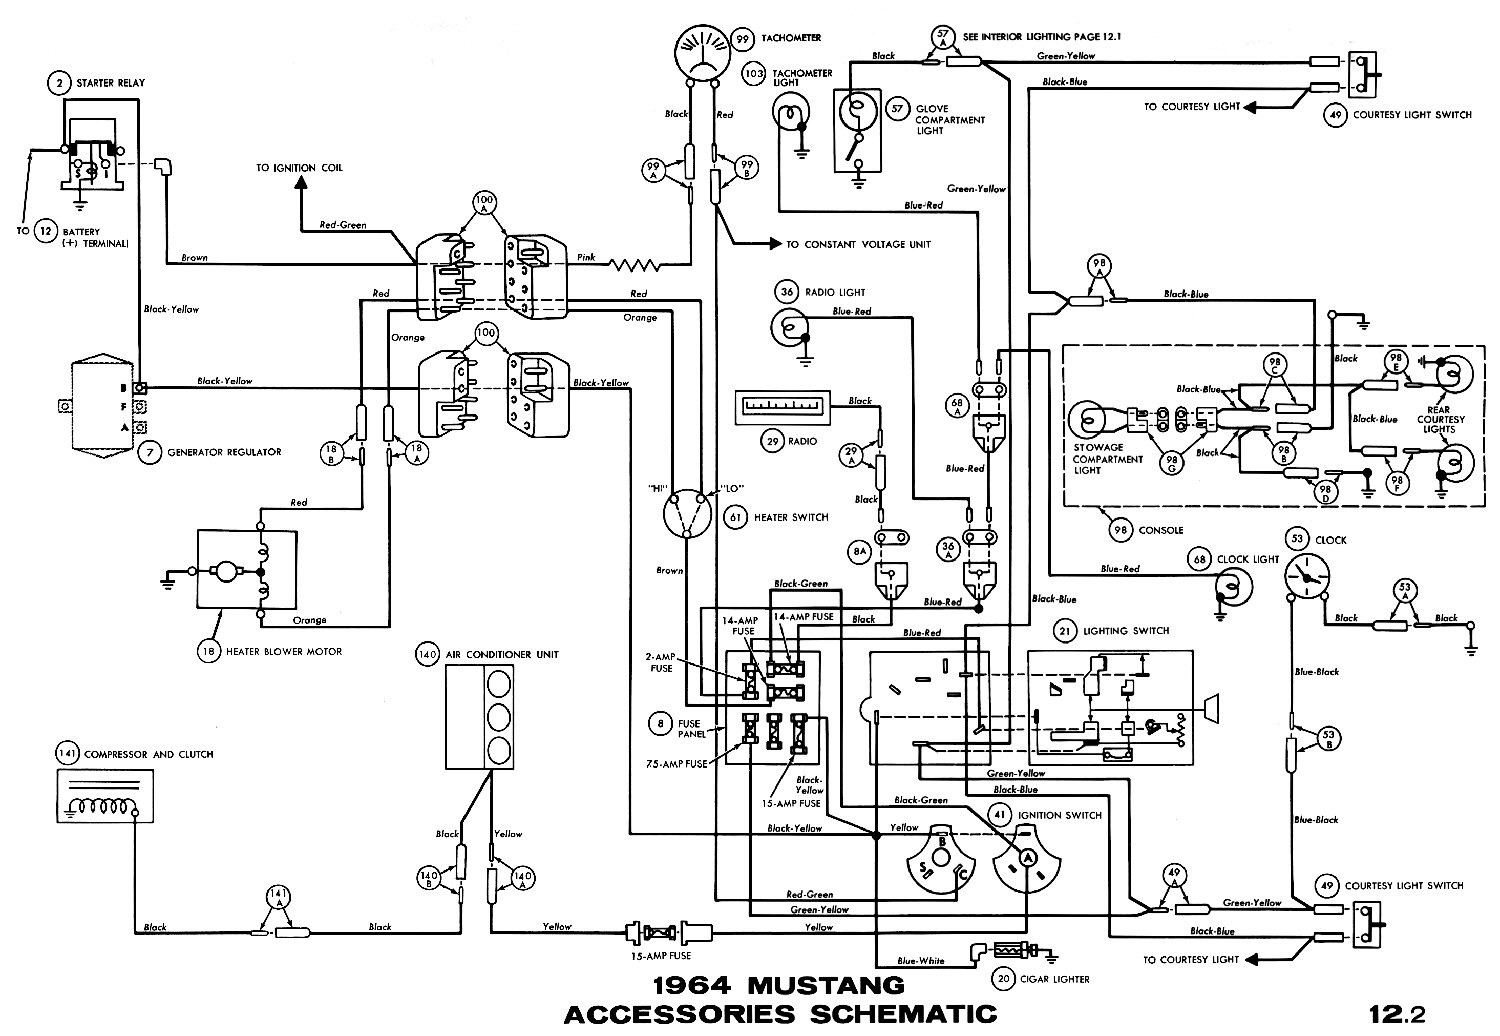 1966 ford mustang v6 engine diagram diy enthusiasts wiring diagrams u2022 rh okdrywall co 2002 ford mustang v6 engine diagram 2002 ford mustang gt engine diagram